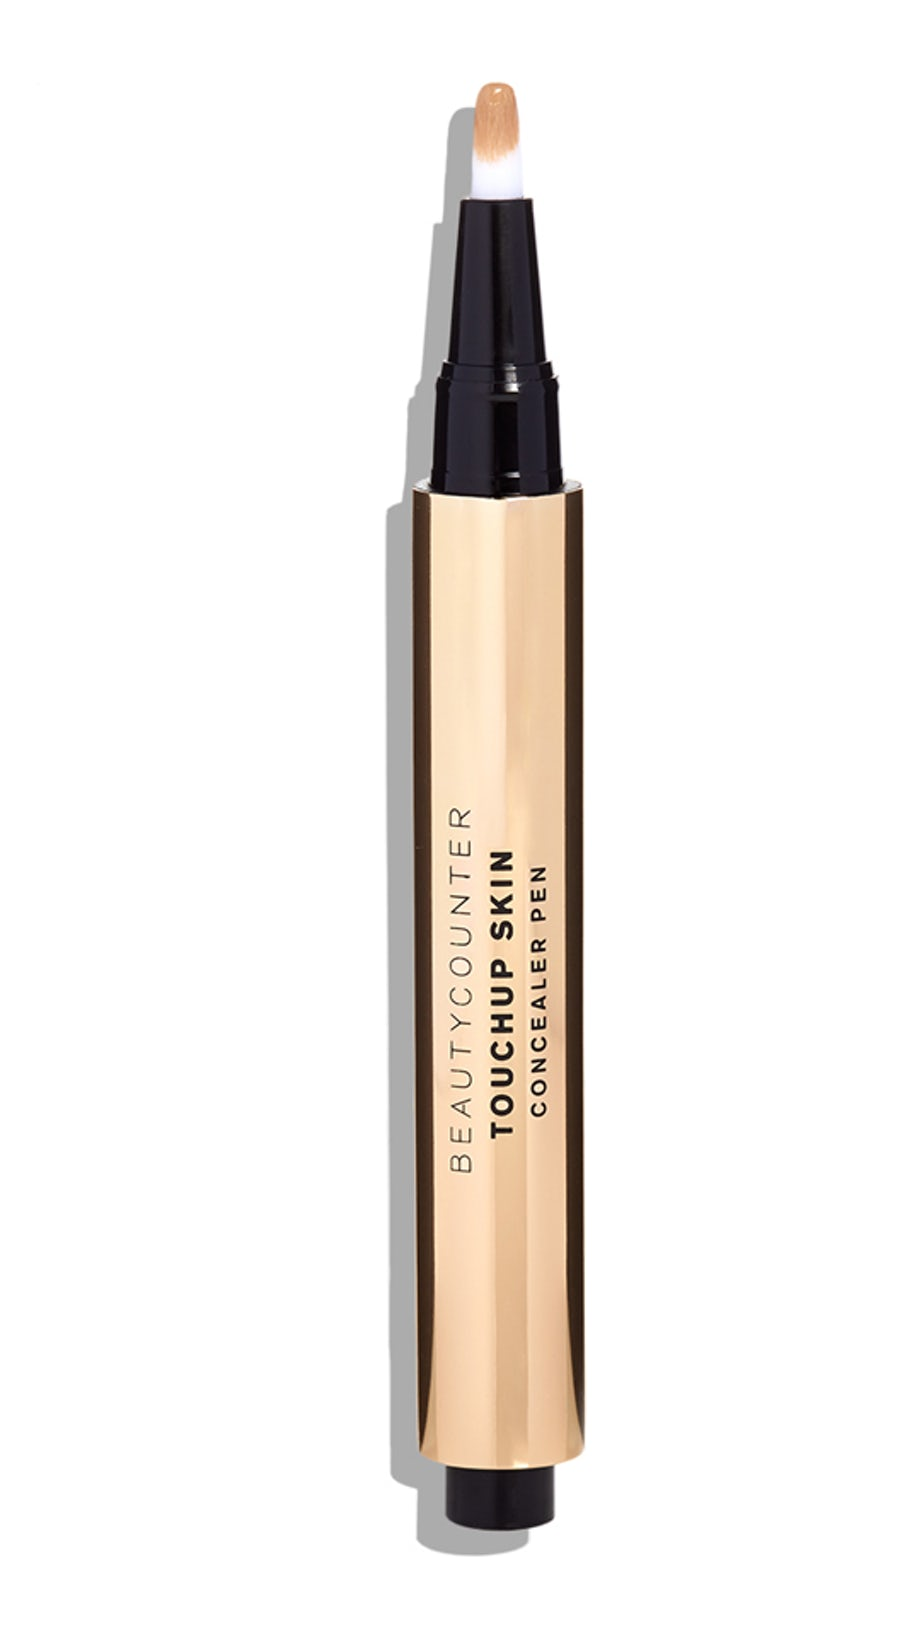 TOUCHUP SKIN CONCEALER PEN (SHADE: Medium 1) - This shade has a beautiful orange tone that I think works well in canceling out my dark circles, but I think I'll need to get another shade that's lighter to help with brightness. It has a semi-thick consistency so it has to be set.CONS: It's not crease-proof and I don't like the pen-style application.